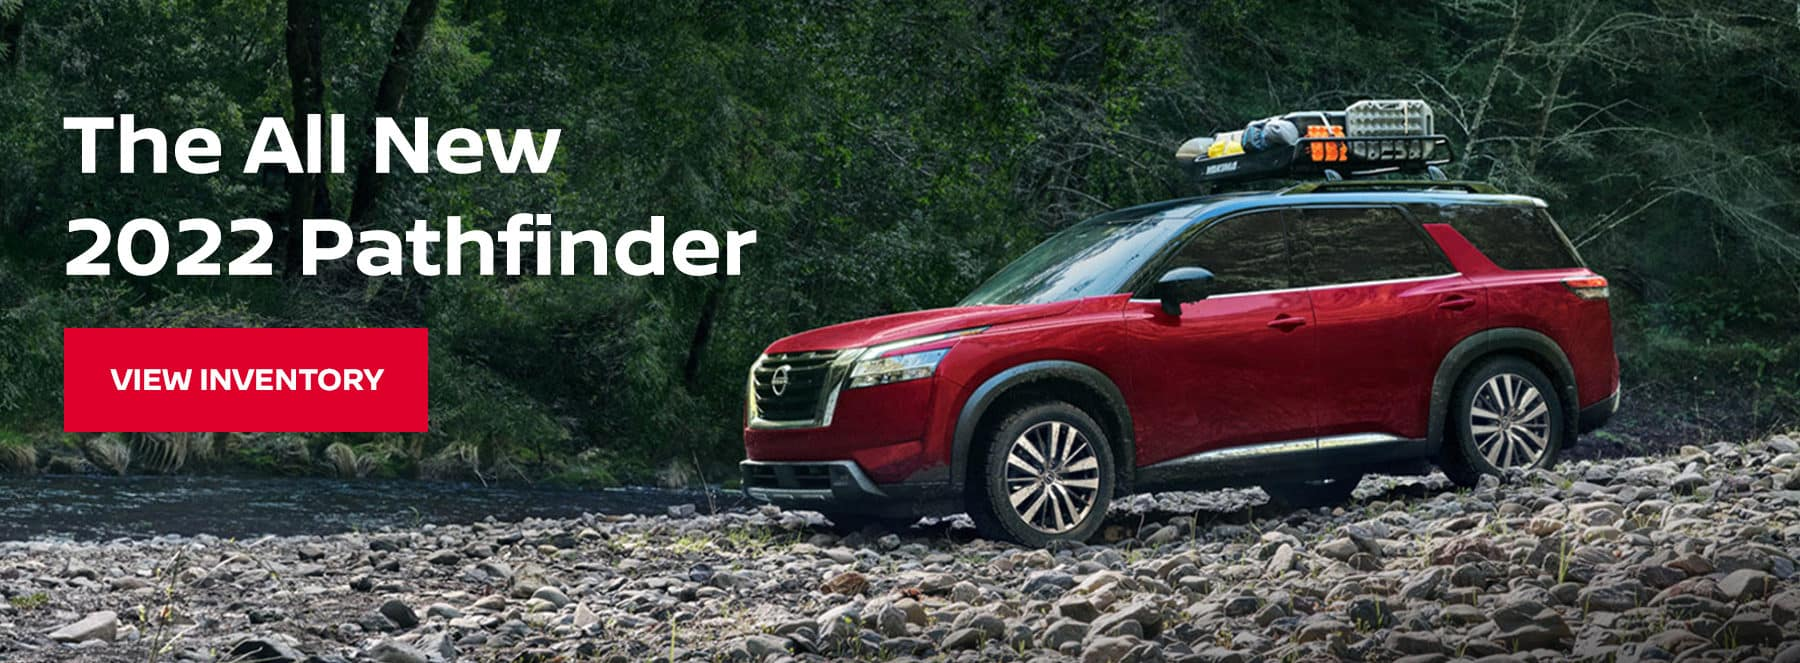 The All New 2022 Pathfinder